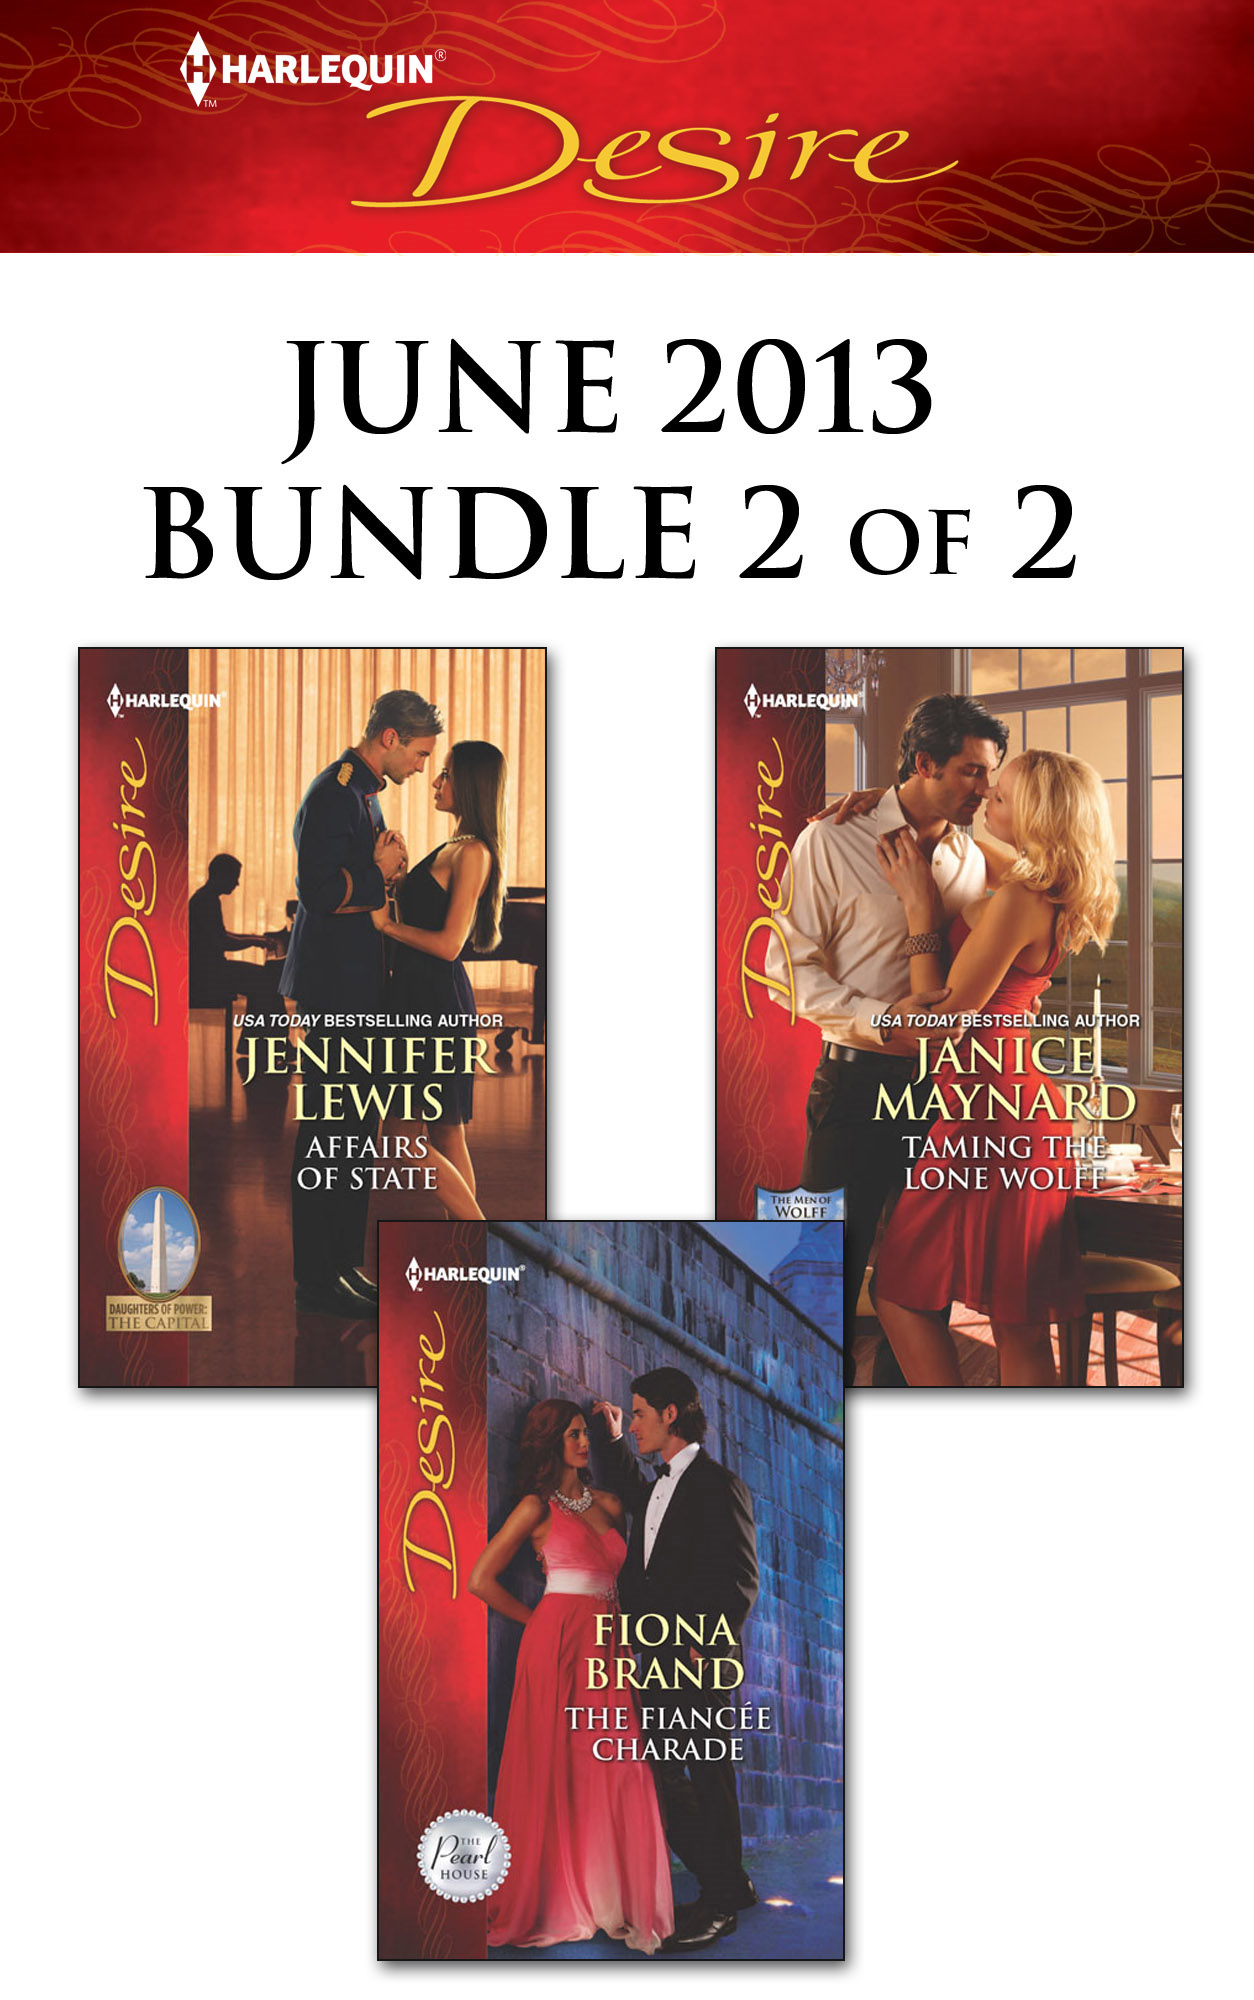 Harlequin Desire June 2013 - Bundle 2 of 2